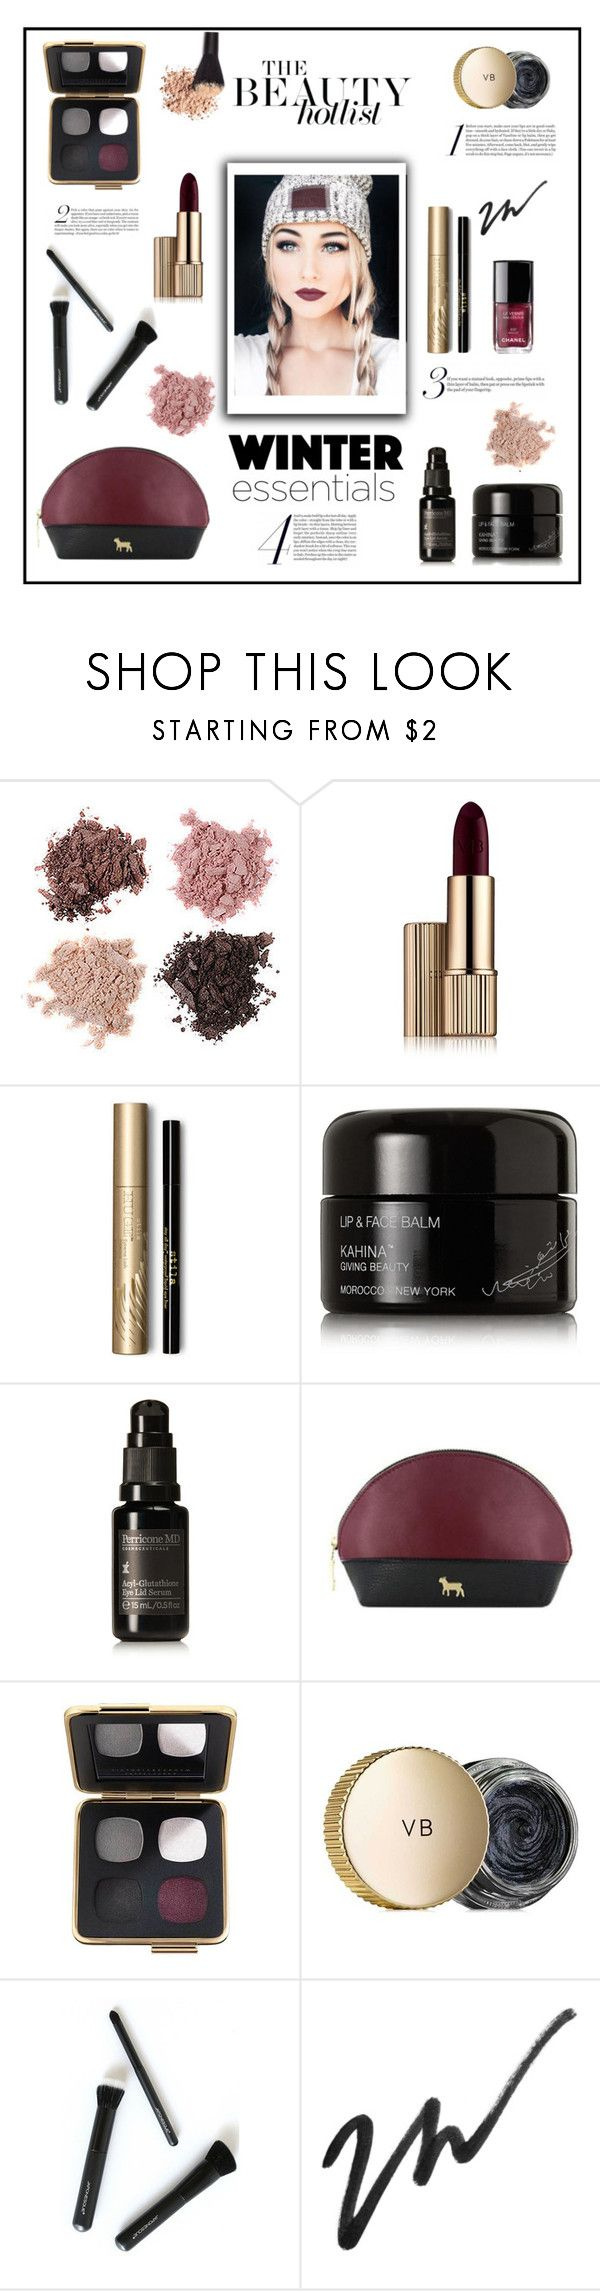 """""""Winter Beauty Essentials!"""" by diane1234 ❤ liked on Polyvore featuring Forever 21, Estée Lauder, Stila, Kahina Giving Beauty, Perricone MD, Noted*, Victoria Beckham, Japonesque, Beauty and pretty"""